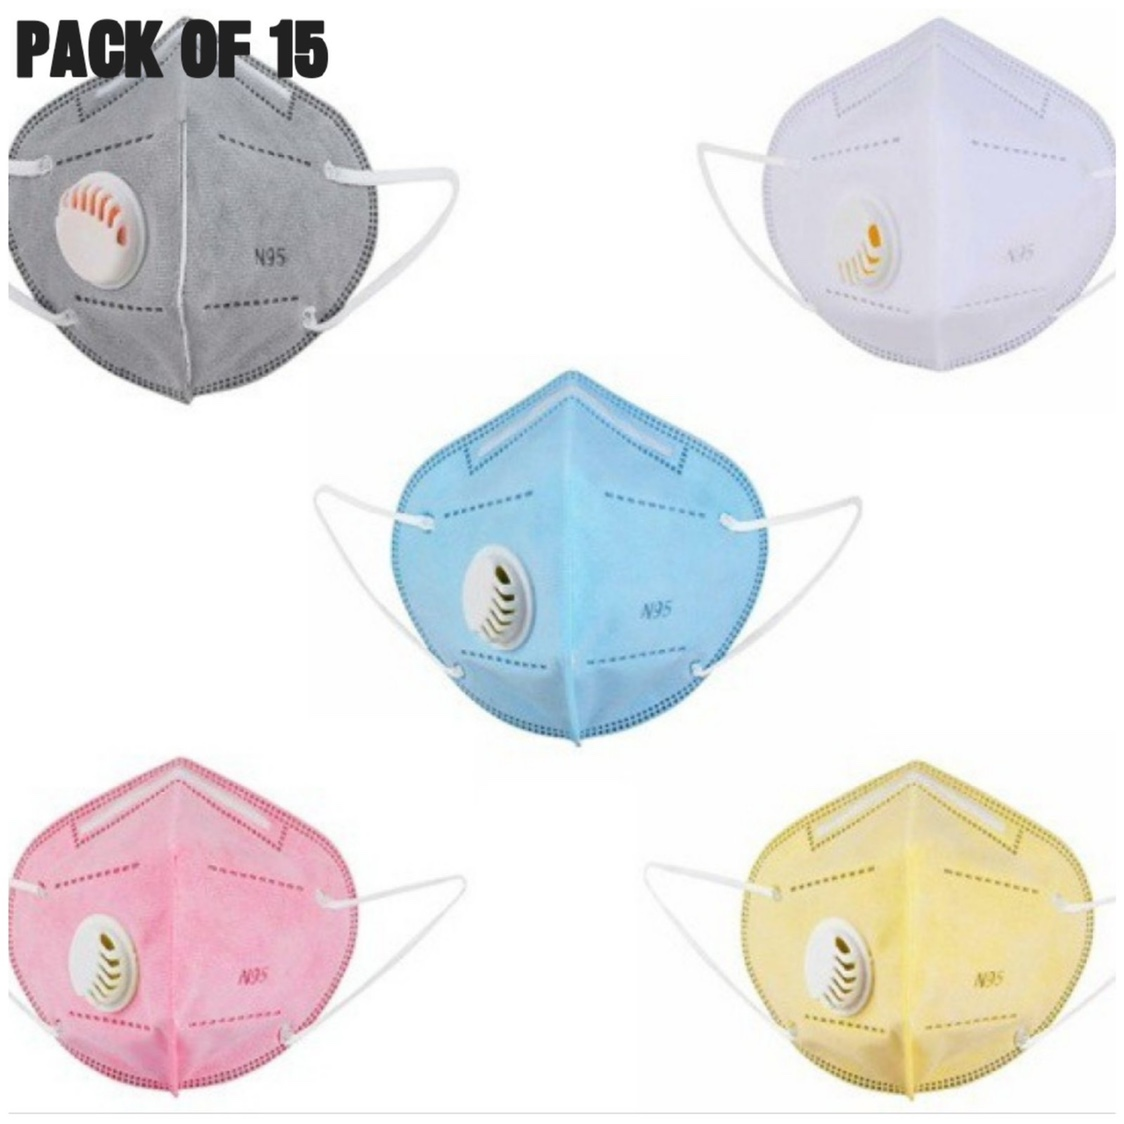 N95 Mask With Filter (Pack of 15)